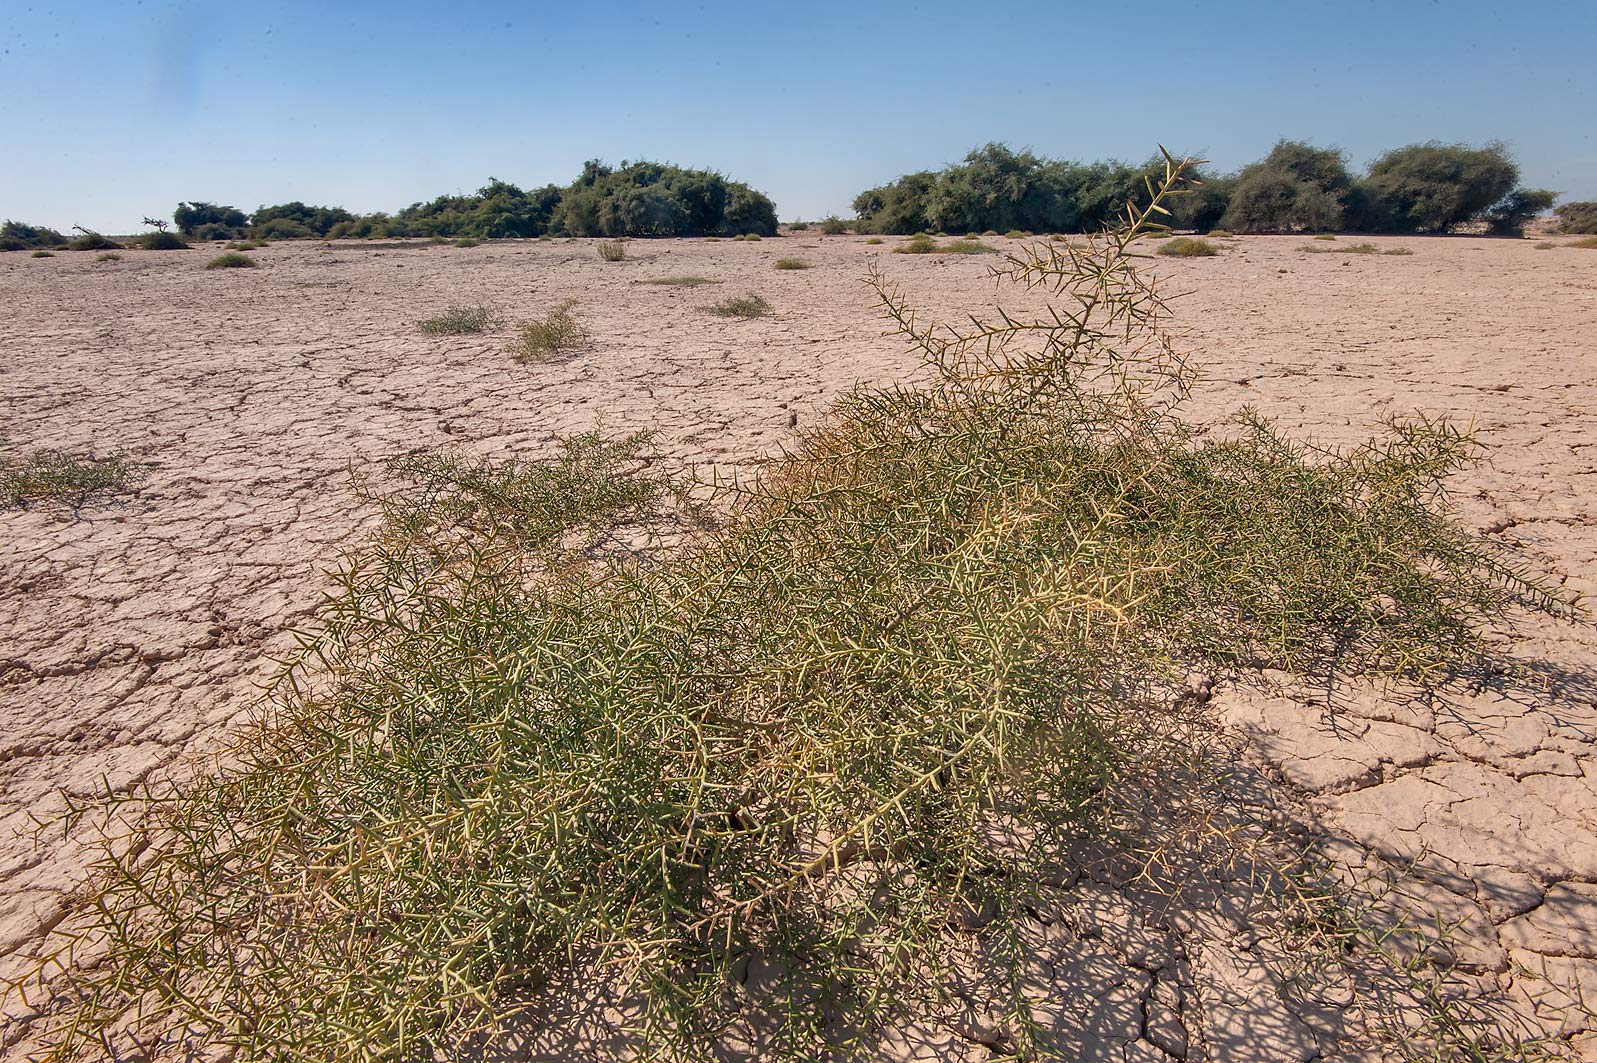 Camelthorn bush (Alhagi maurorum) in a silty...Nuaman, Nuaimiya). Northern Qatar